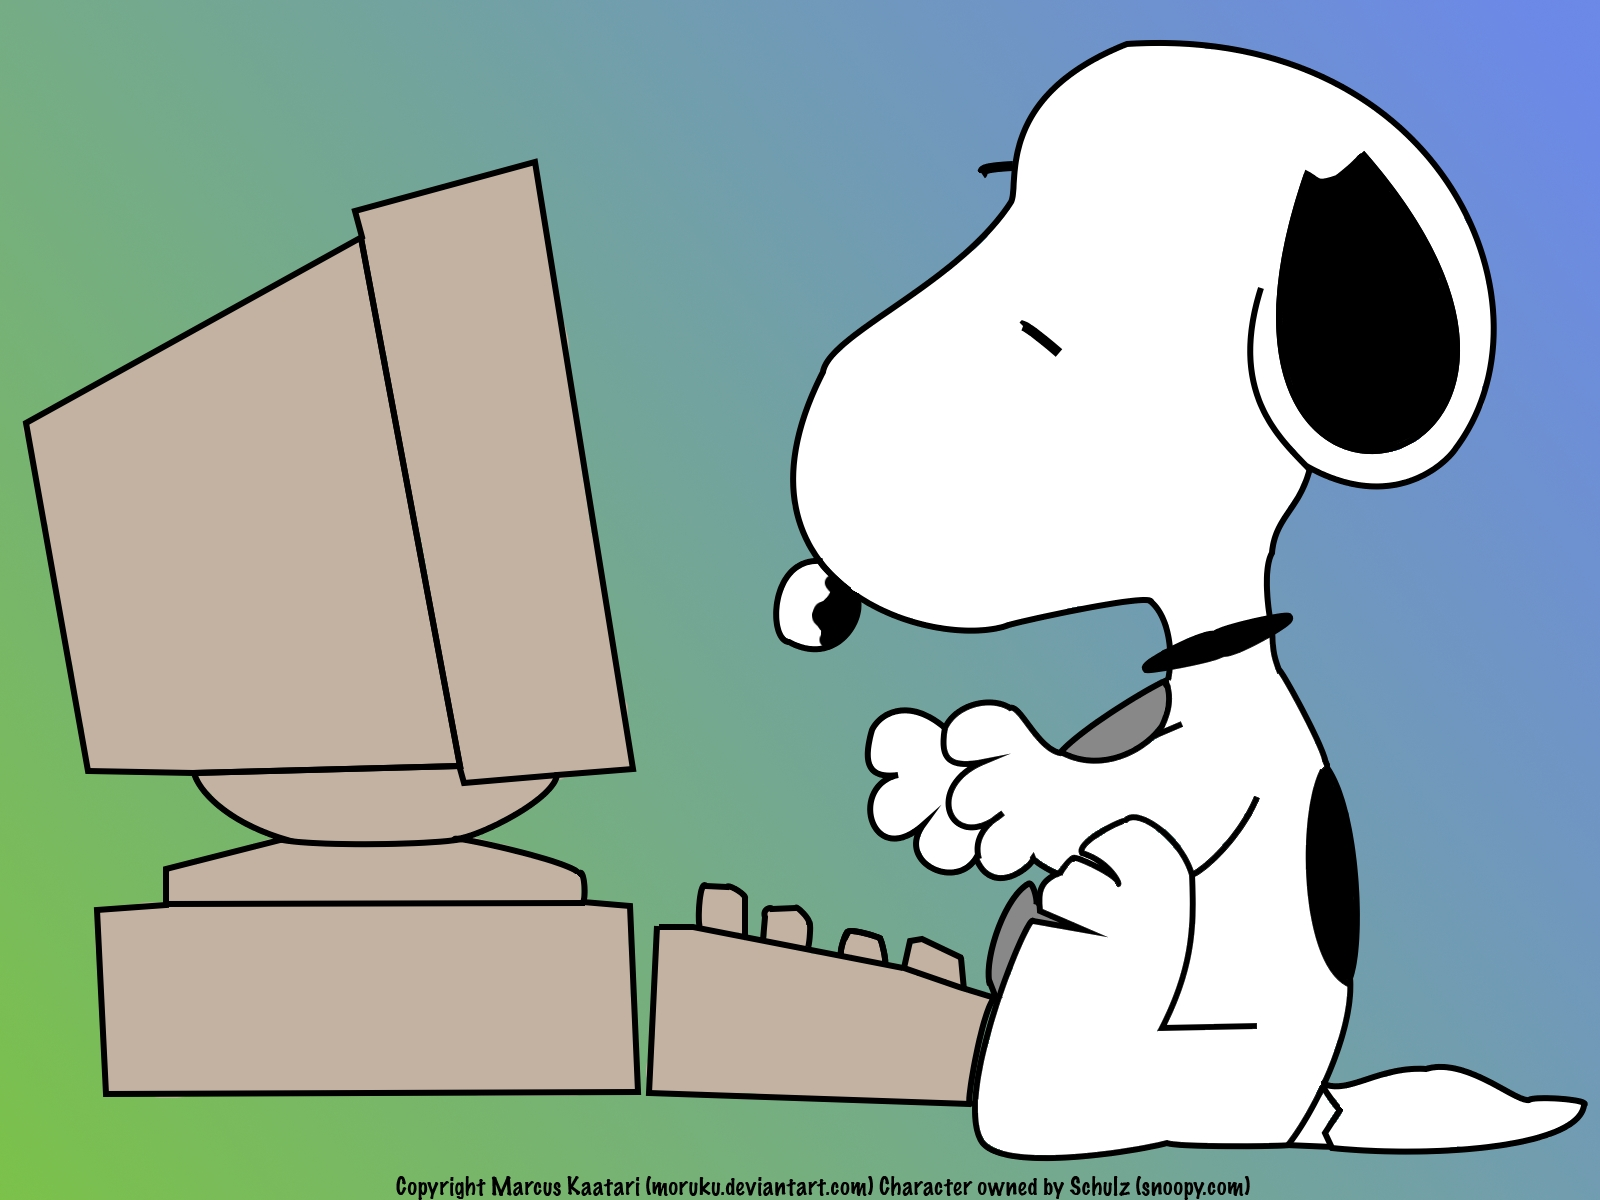 image - snoopy and a computer | peanuts wiki | fandom powered